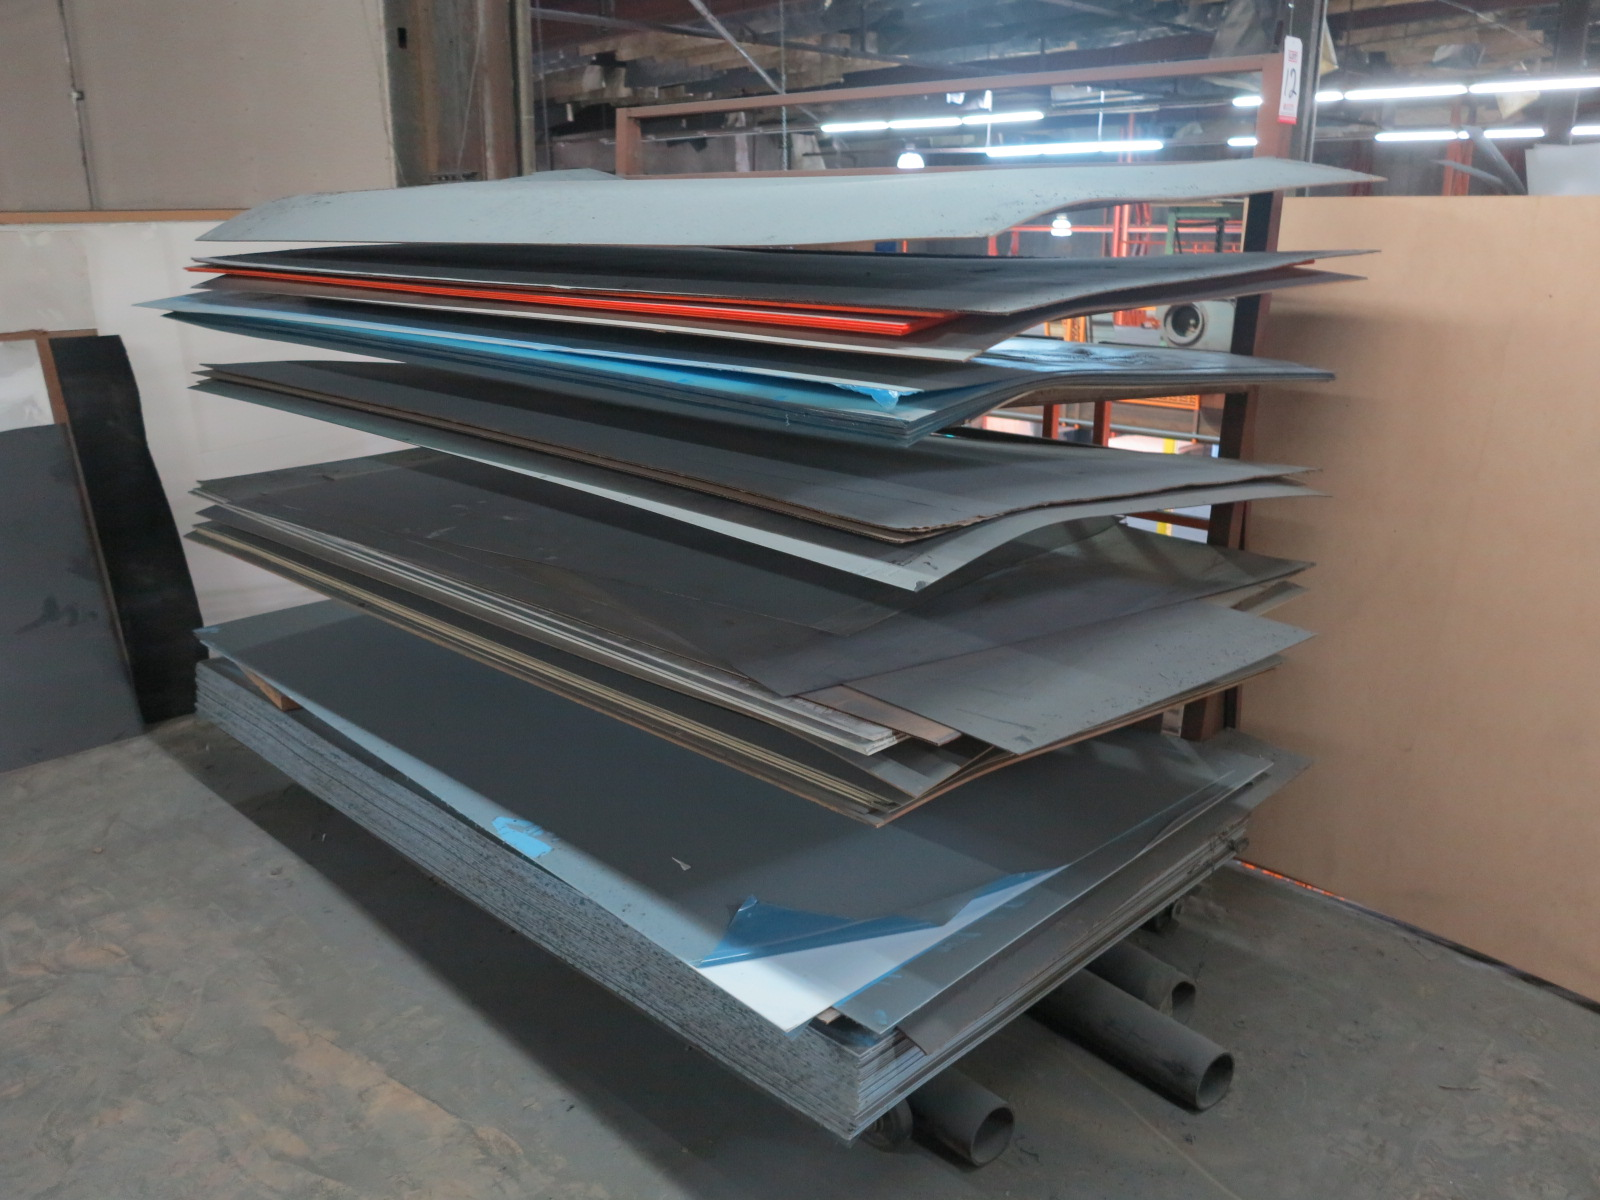 LOT - ROLLING 4' X 8' SHEET STOCK RACK, W/ CONTENTS OF MISC PLASTIC SHEET STOCK